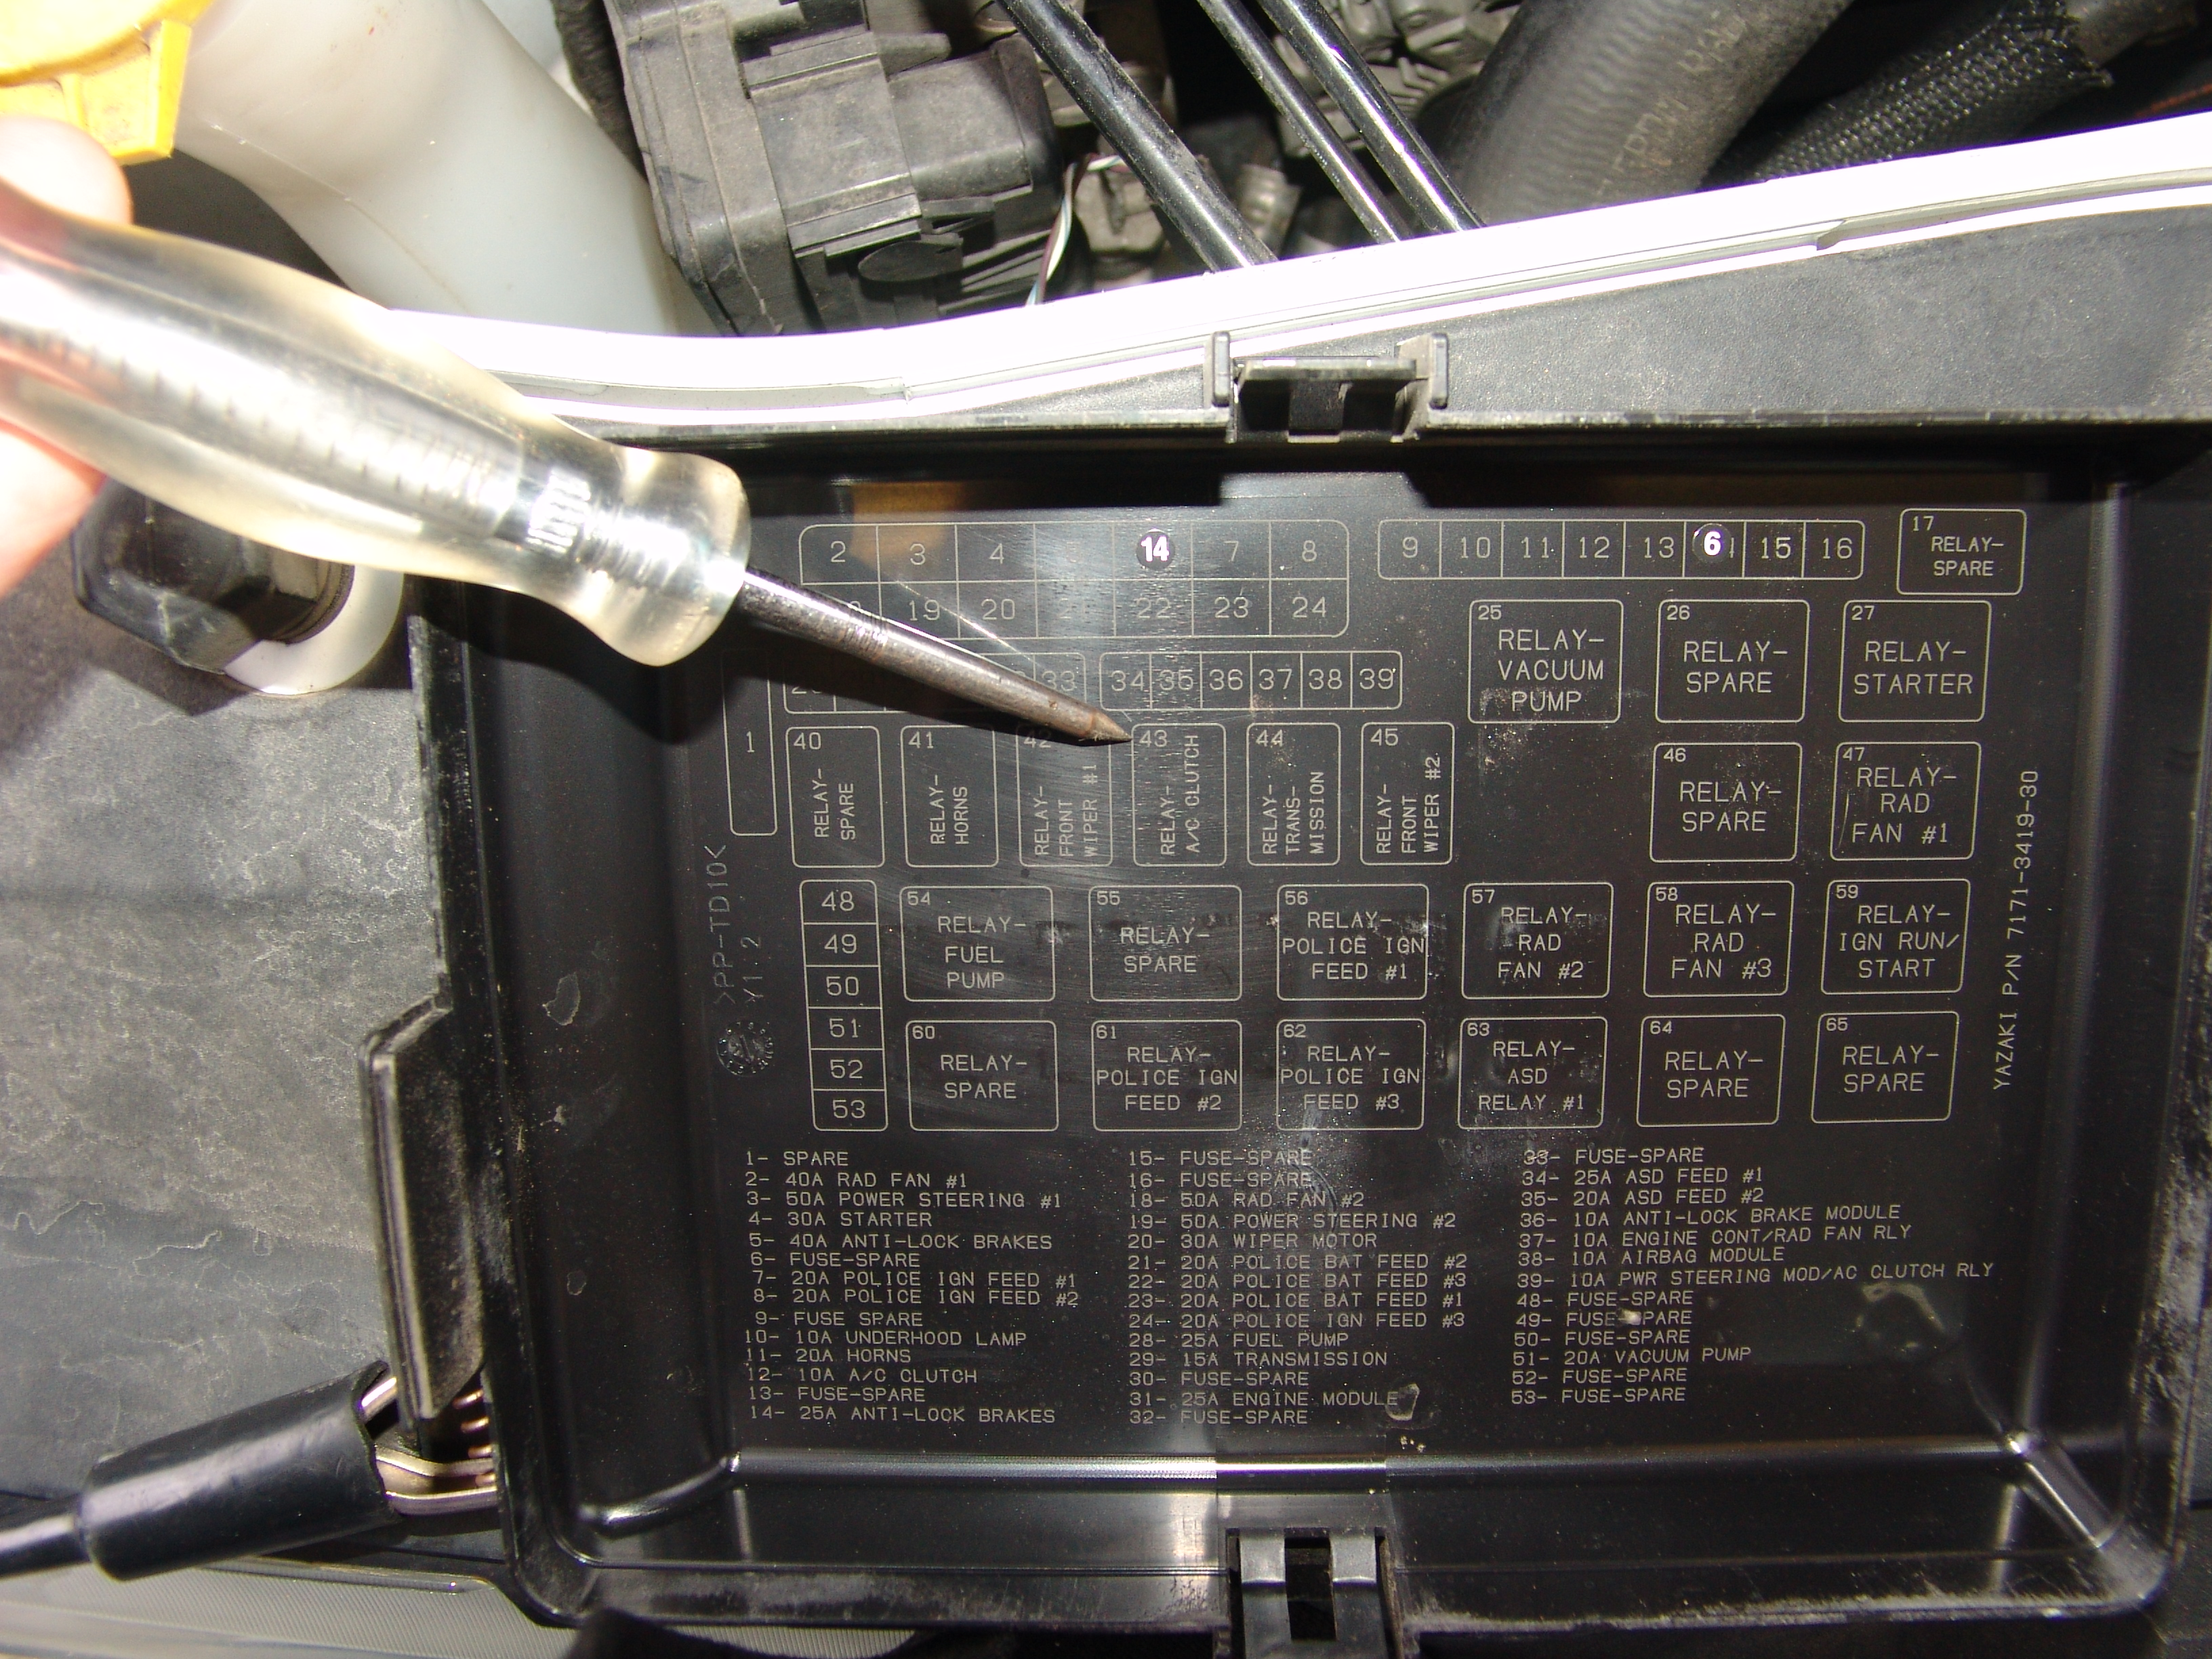 Dodge Fuse Box Ign Bat Electrical Work Wiring Diagram \u2022 Dodge Charger  Heater Core 2013 Dodge Charger Fuse Diagram